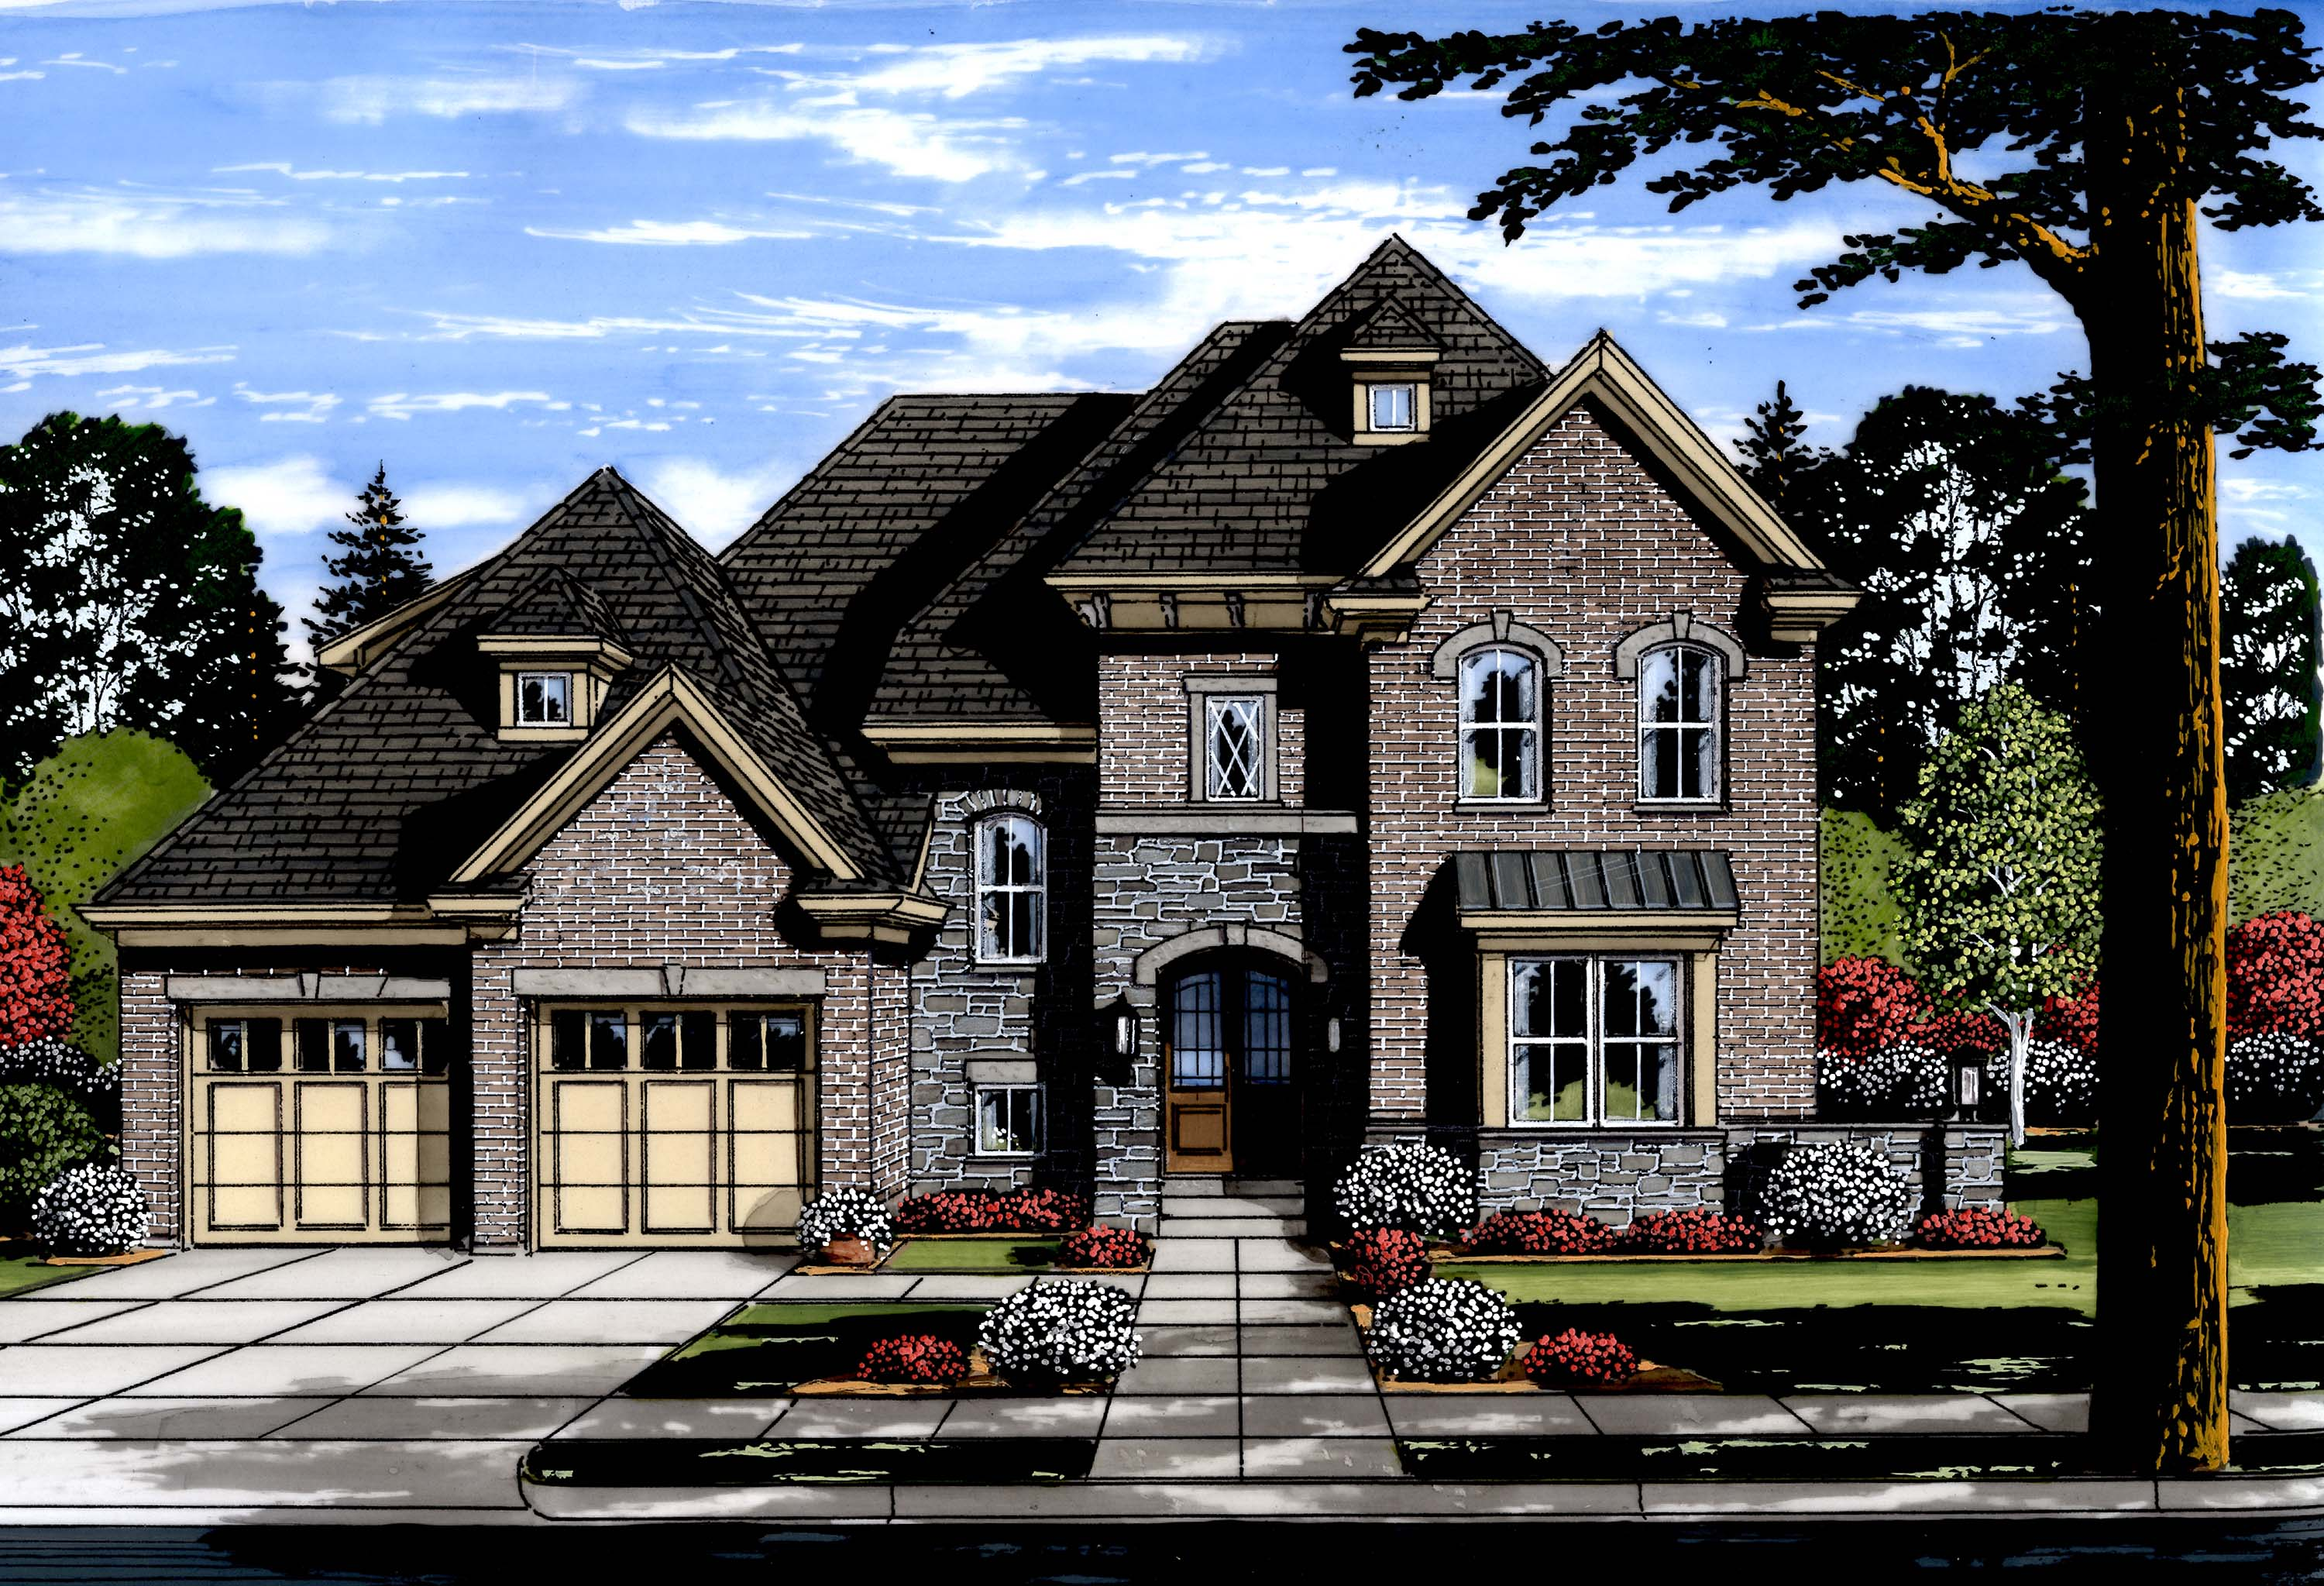 the home designers luxury house plan 169 1120 4 bedrm 3287 sq ft home theplancollection 6685